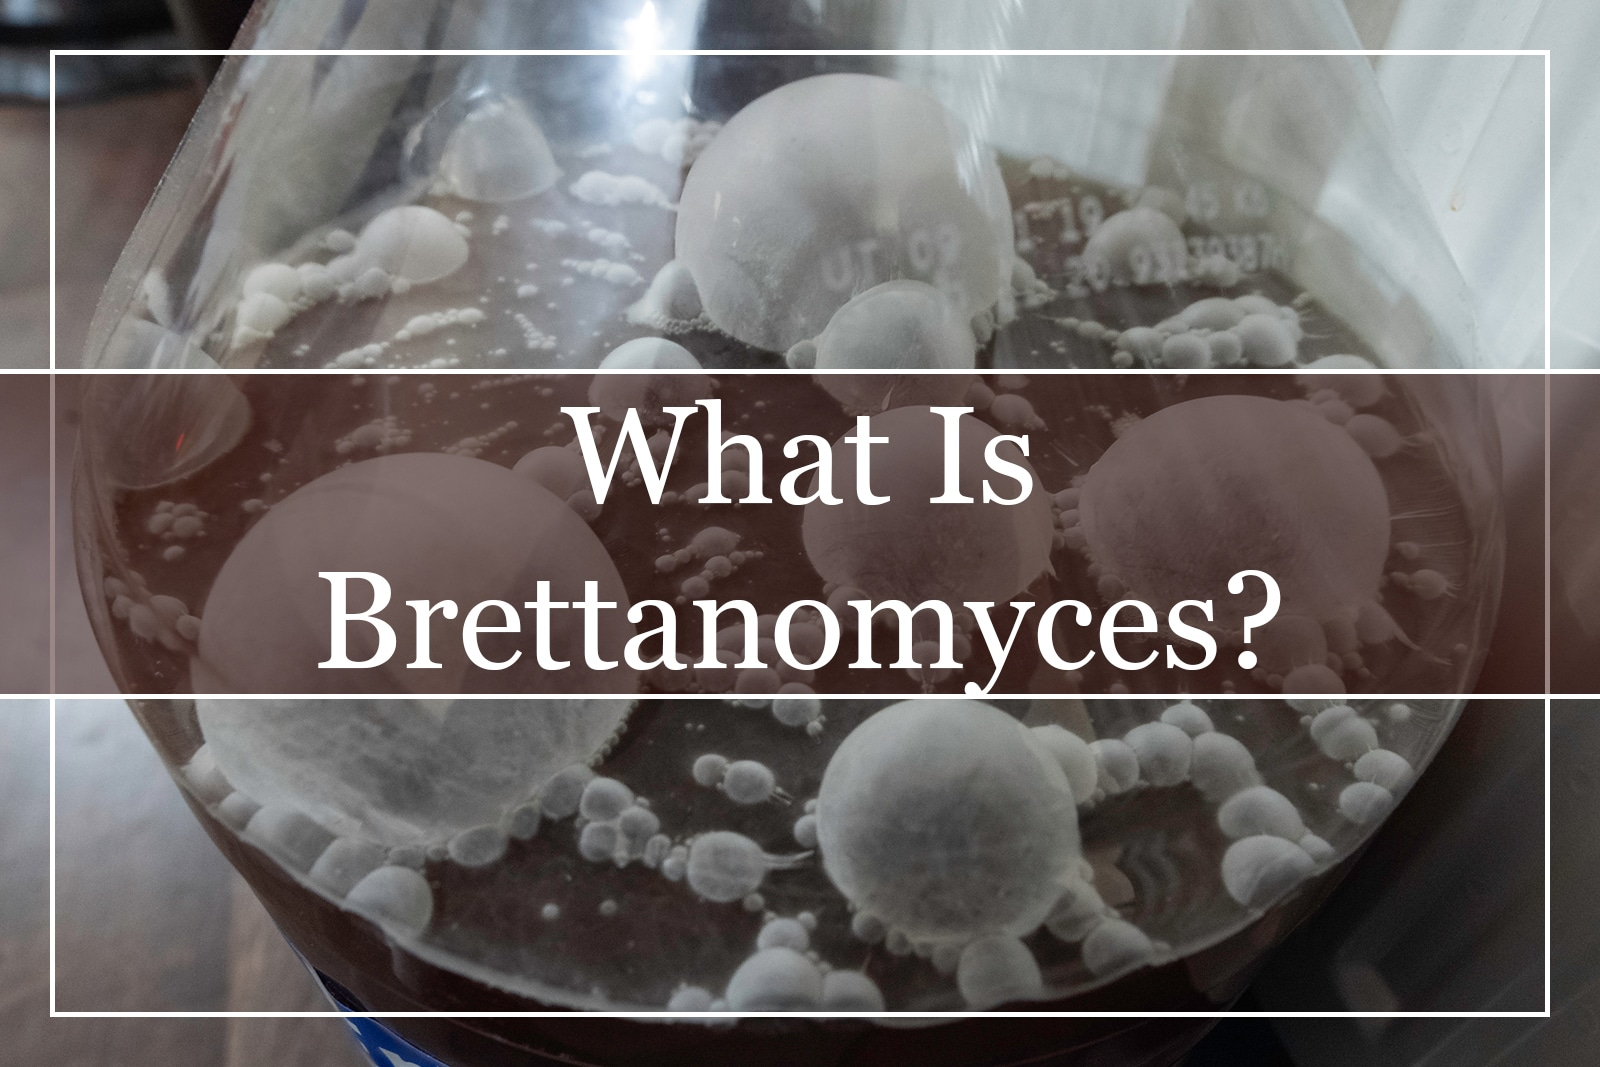 What Is Brettanomyces